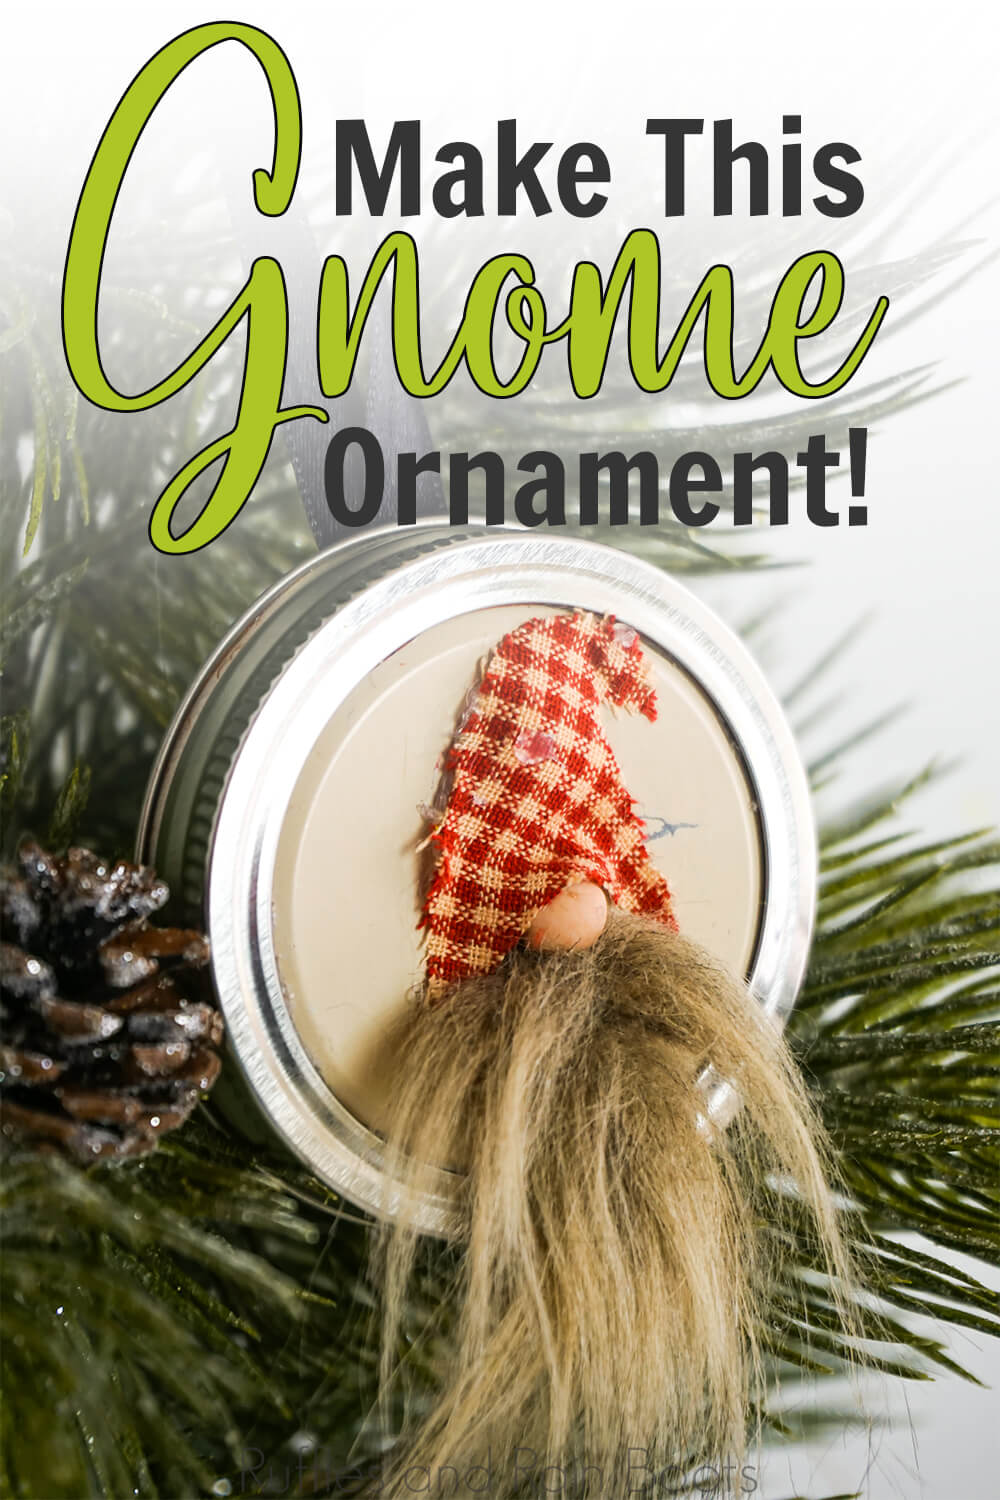 jar lid ornament with a gnome on it hanging from a christmas tree on a white background with text which reads make this gnome ornament